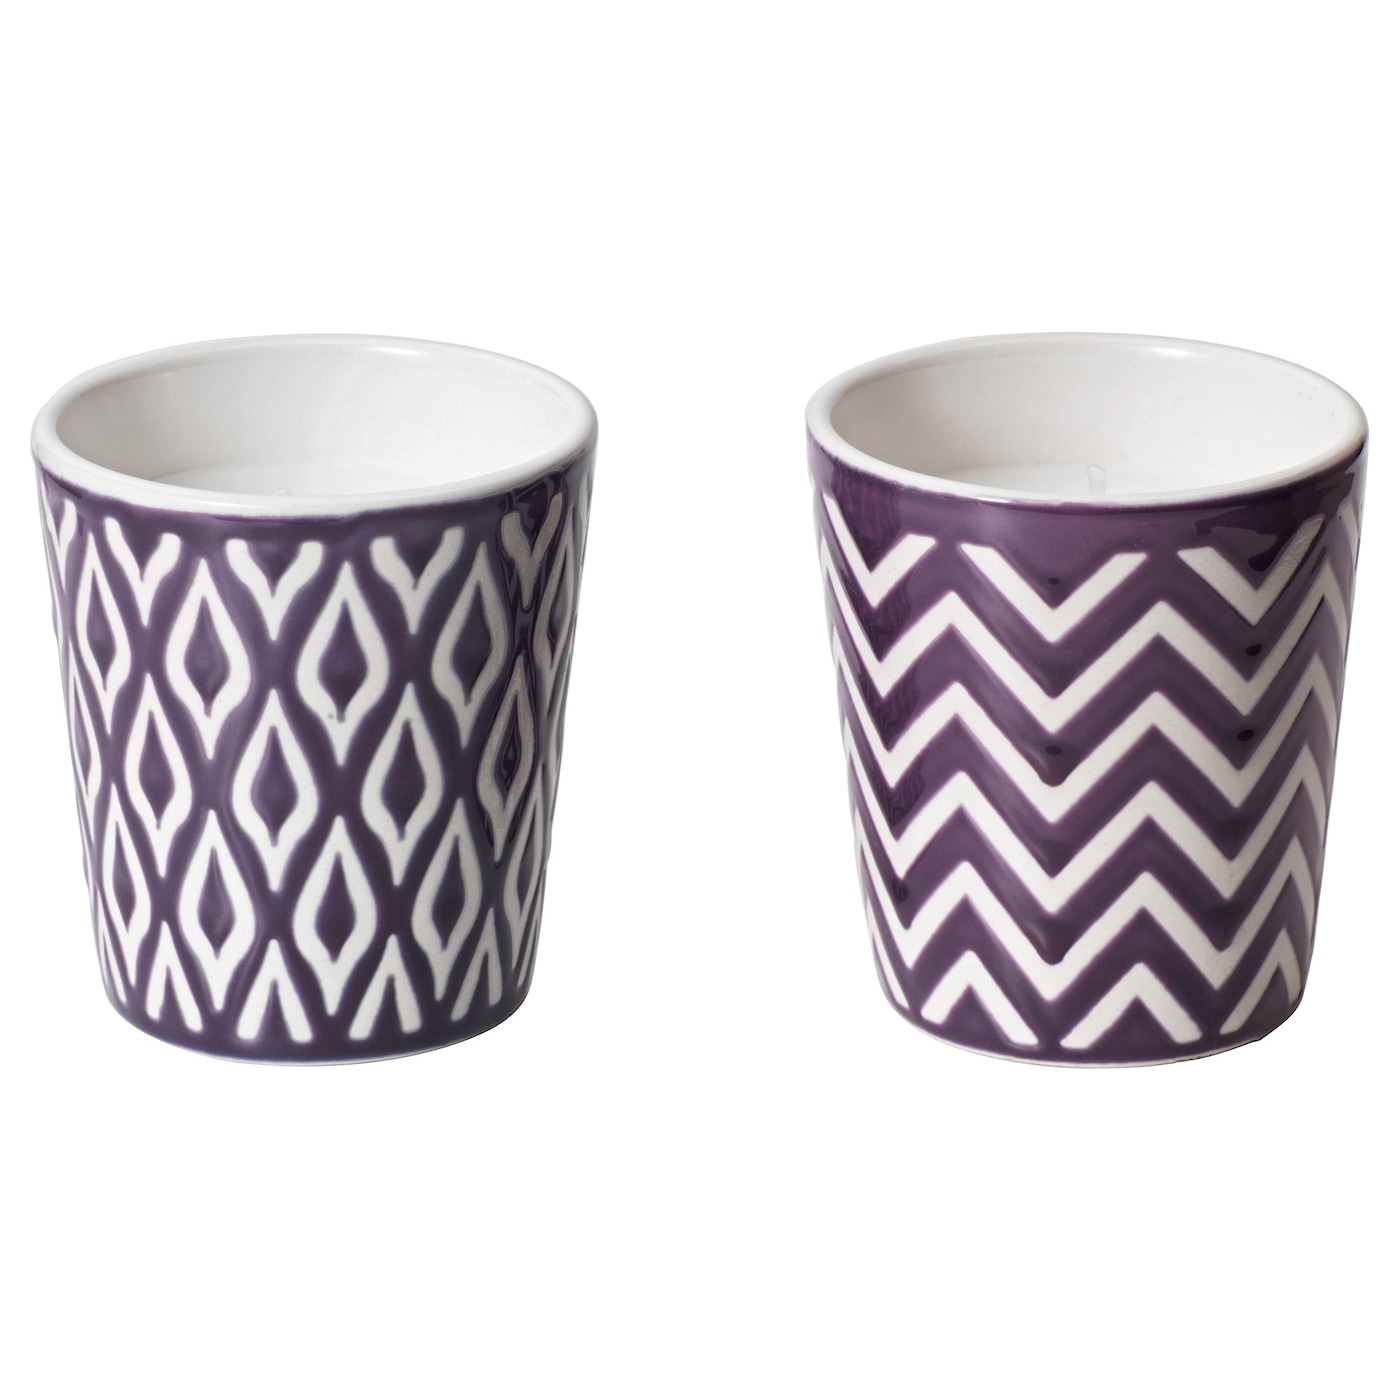 spralla scented candle in pot aloe vera lilac ikea. Black Bedroom Furniture Sets. Home Design Ideas